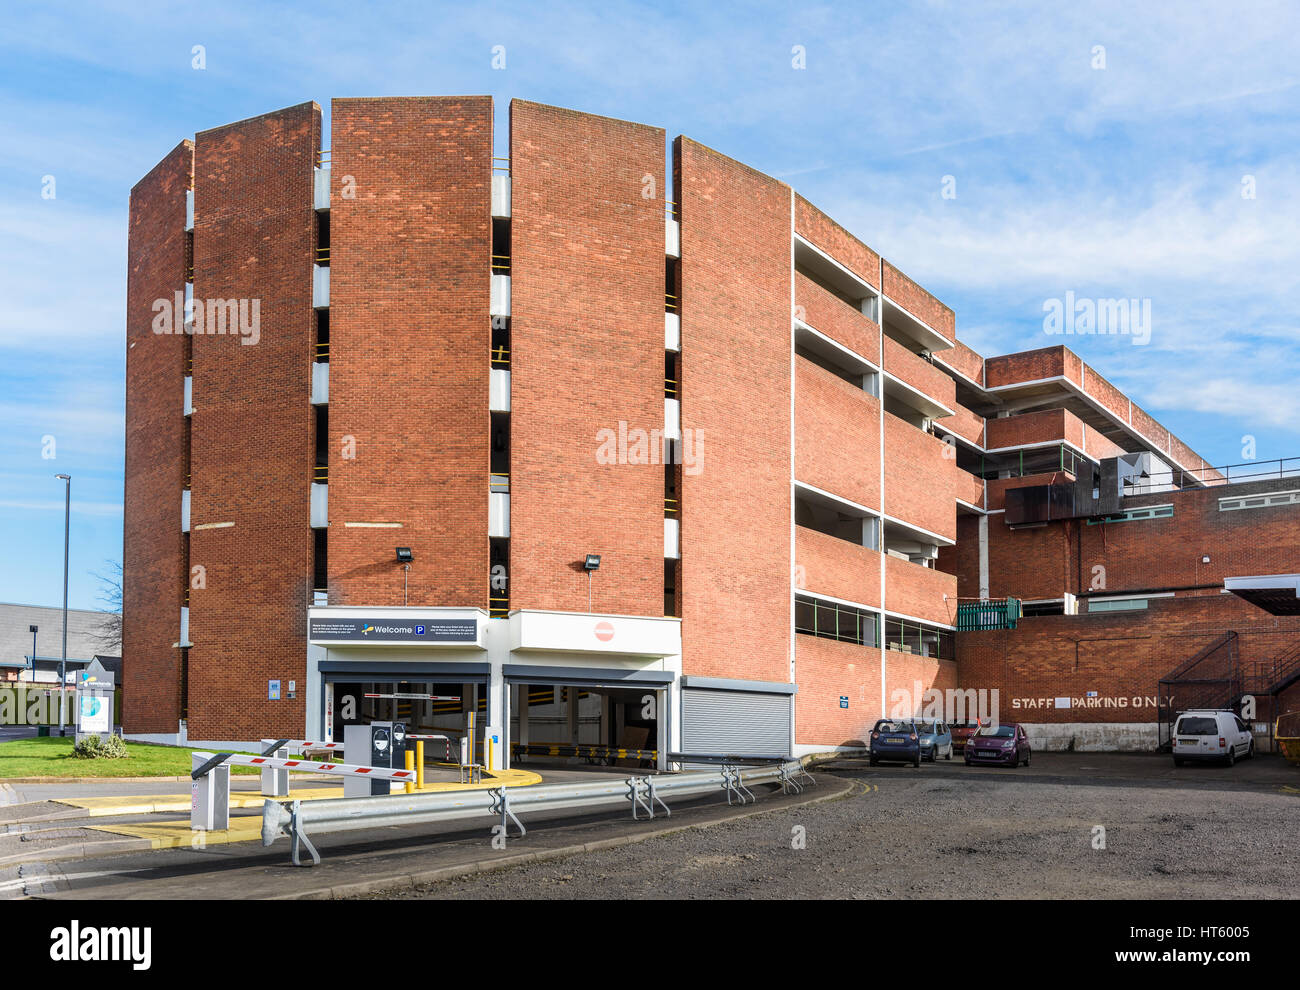 Newlands shopping centre, Kettering. - Stock Image